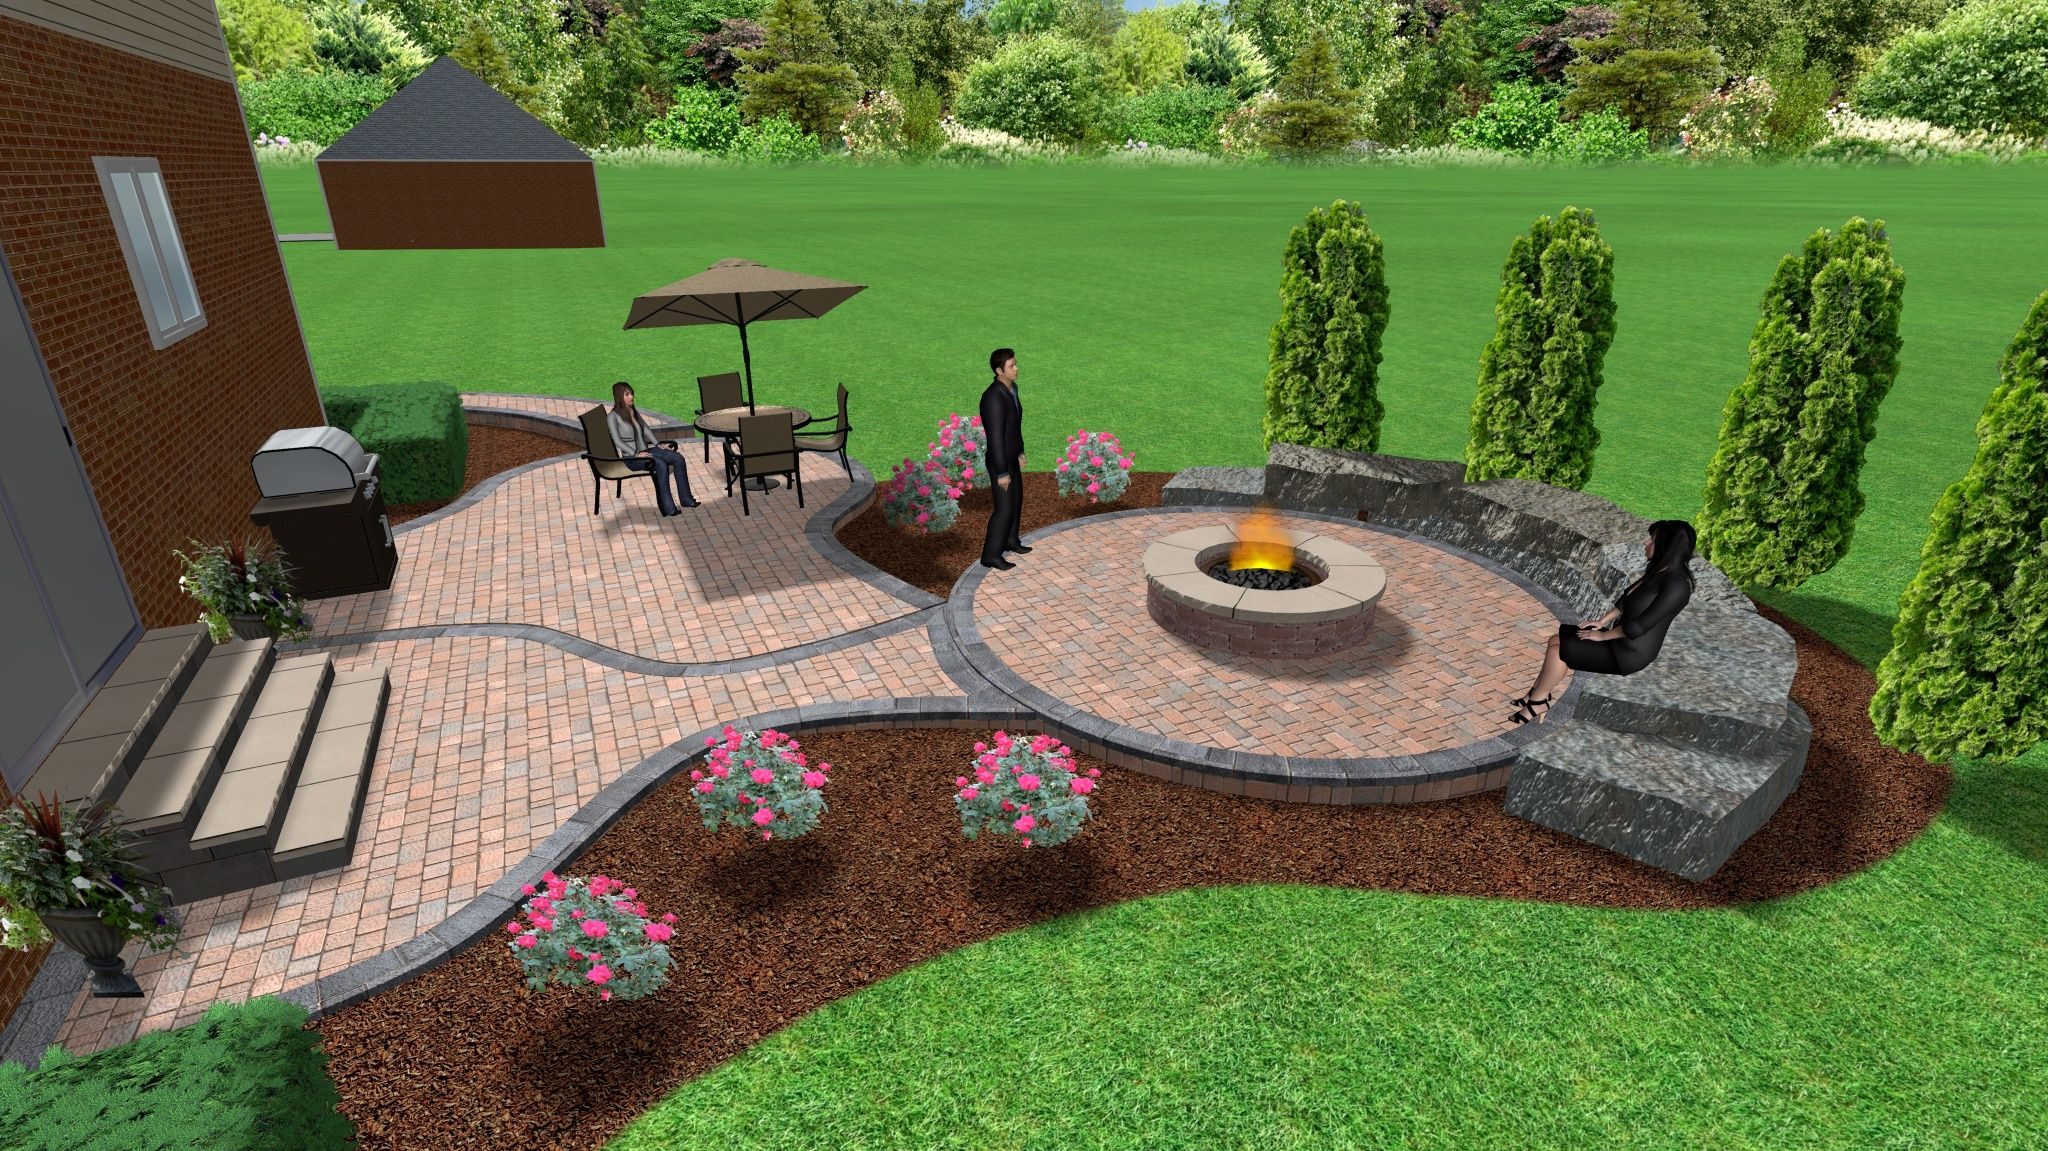 Brick paver patio and fire pit back yard ideas pinterest brick